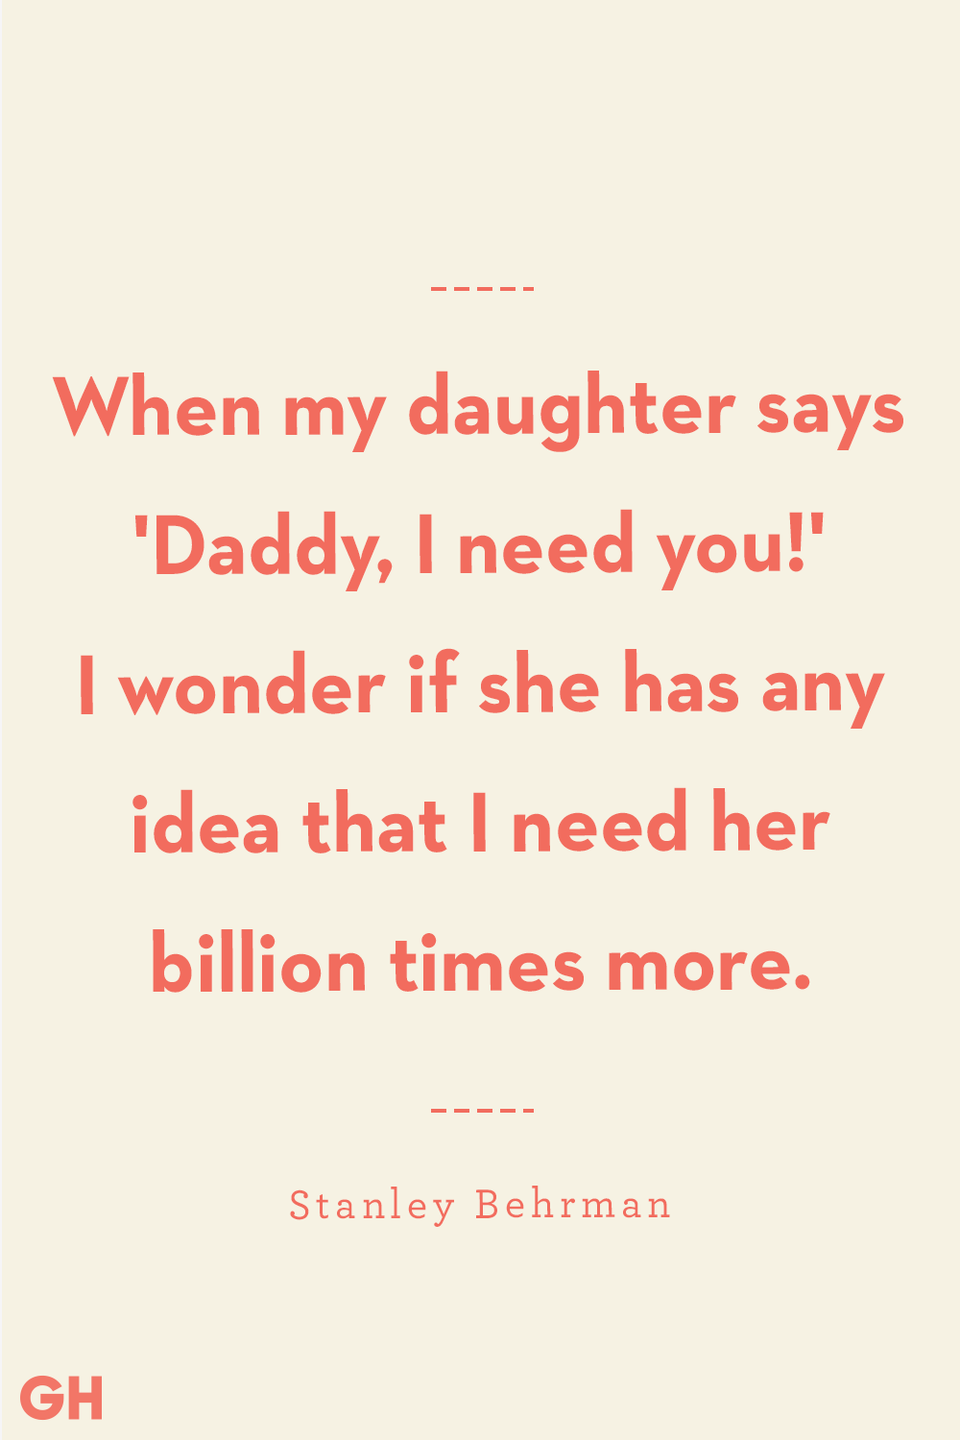 <p>When my daughter says 'Daddy, I need you!' I wonder if she has any idea that I need her billion times more.</p>